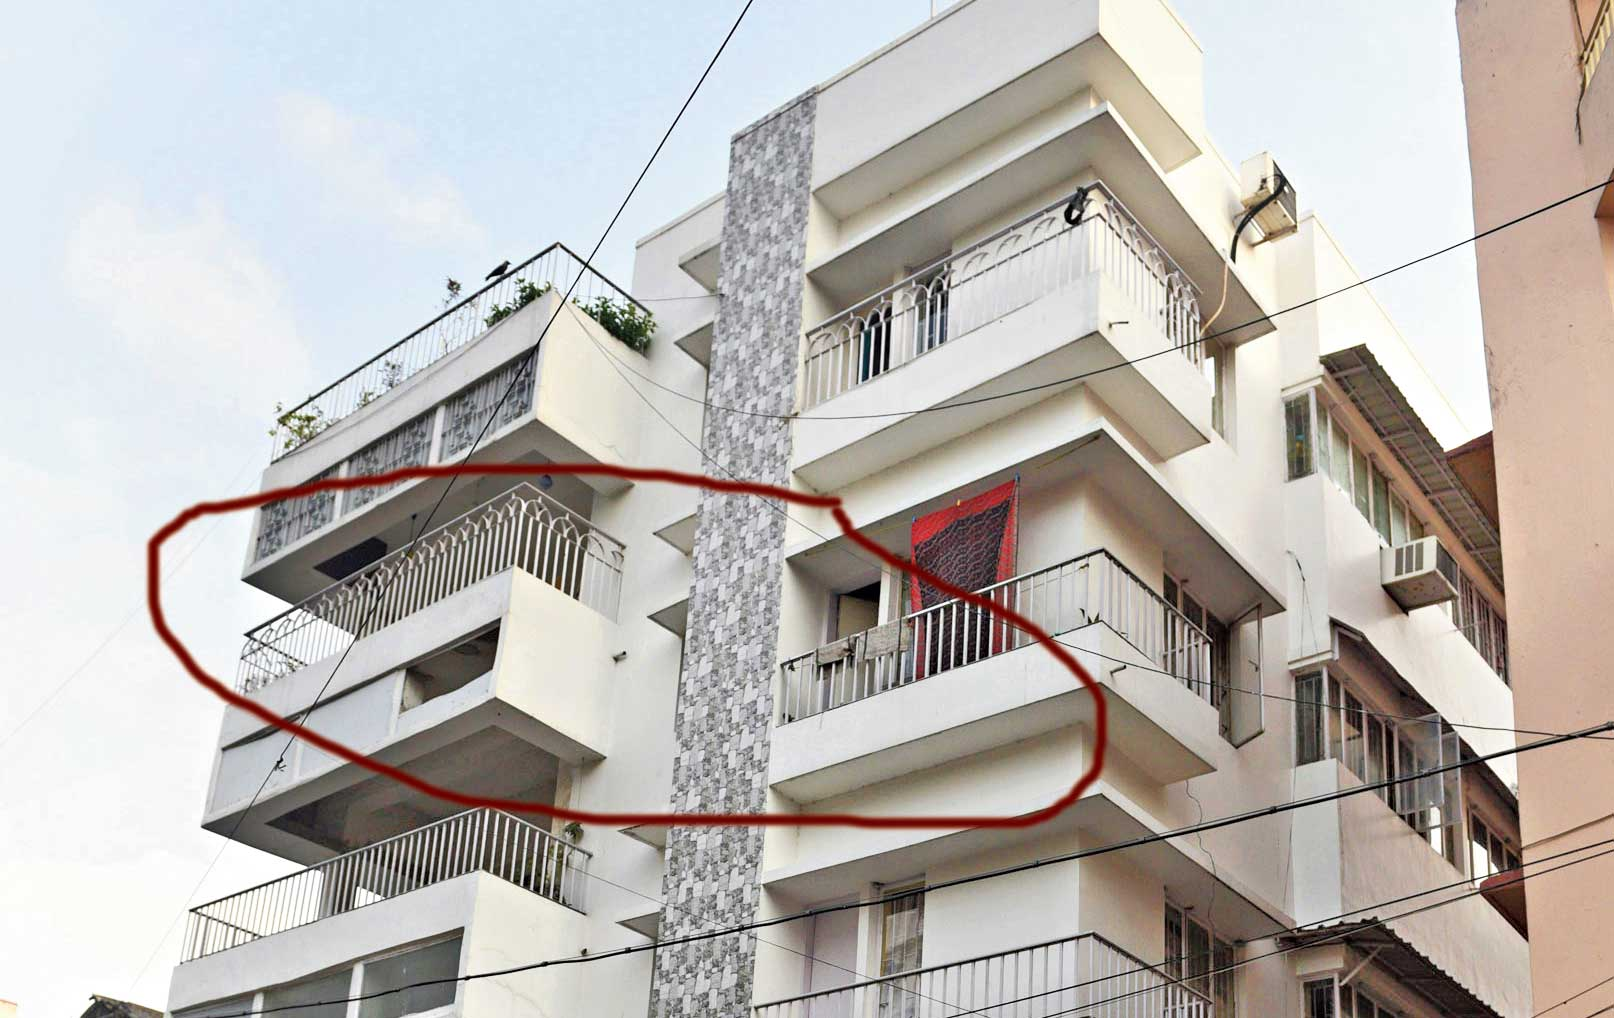 The apartment (circled) in Jodhpur Park where the 75-year-old woman was found dead.